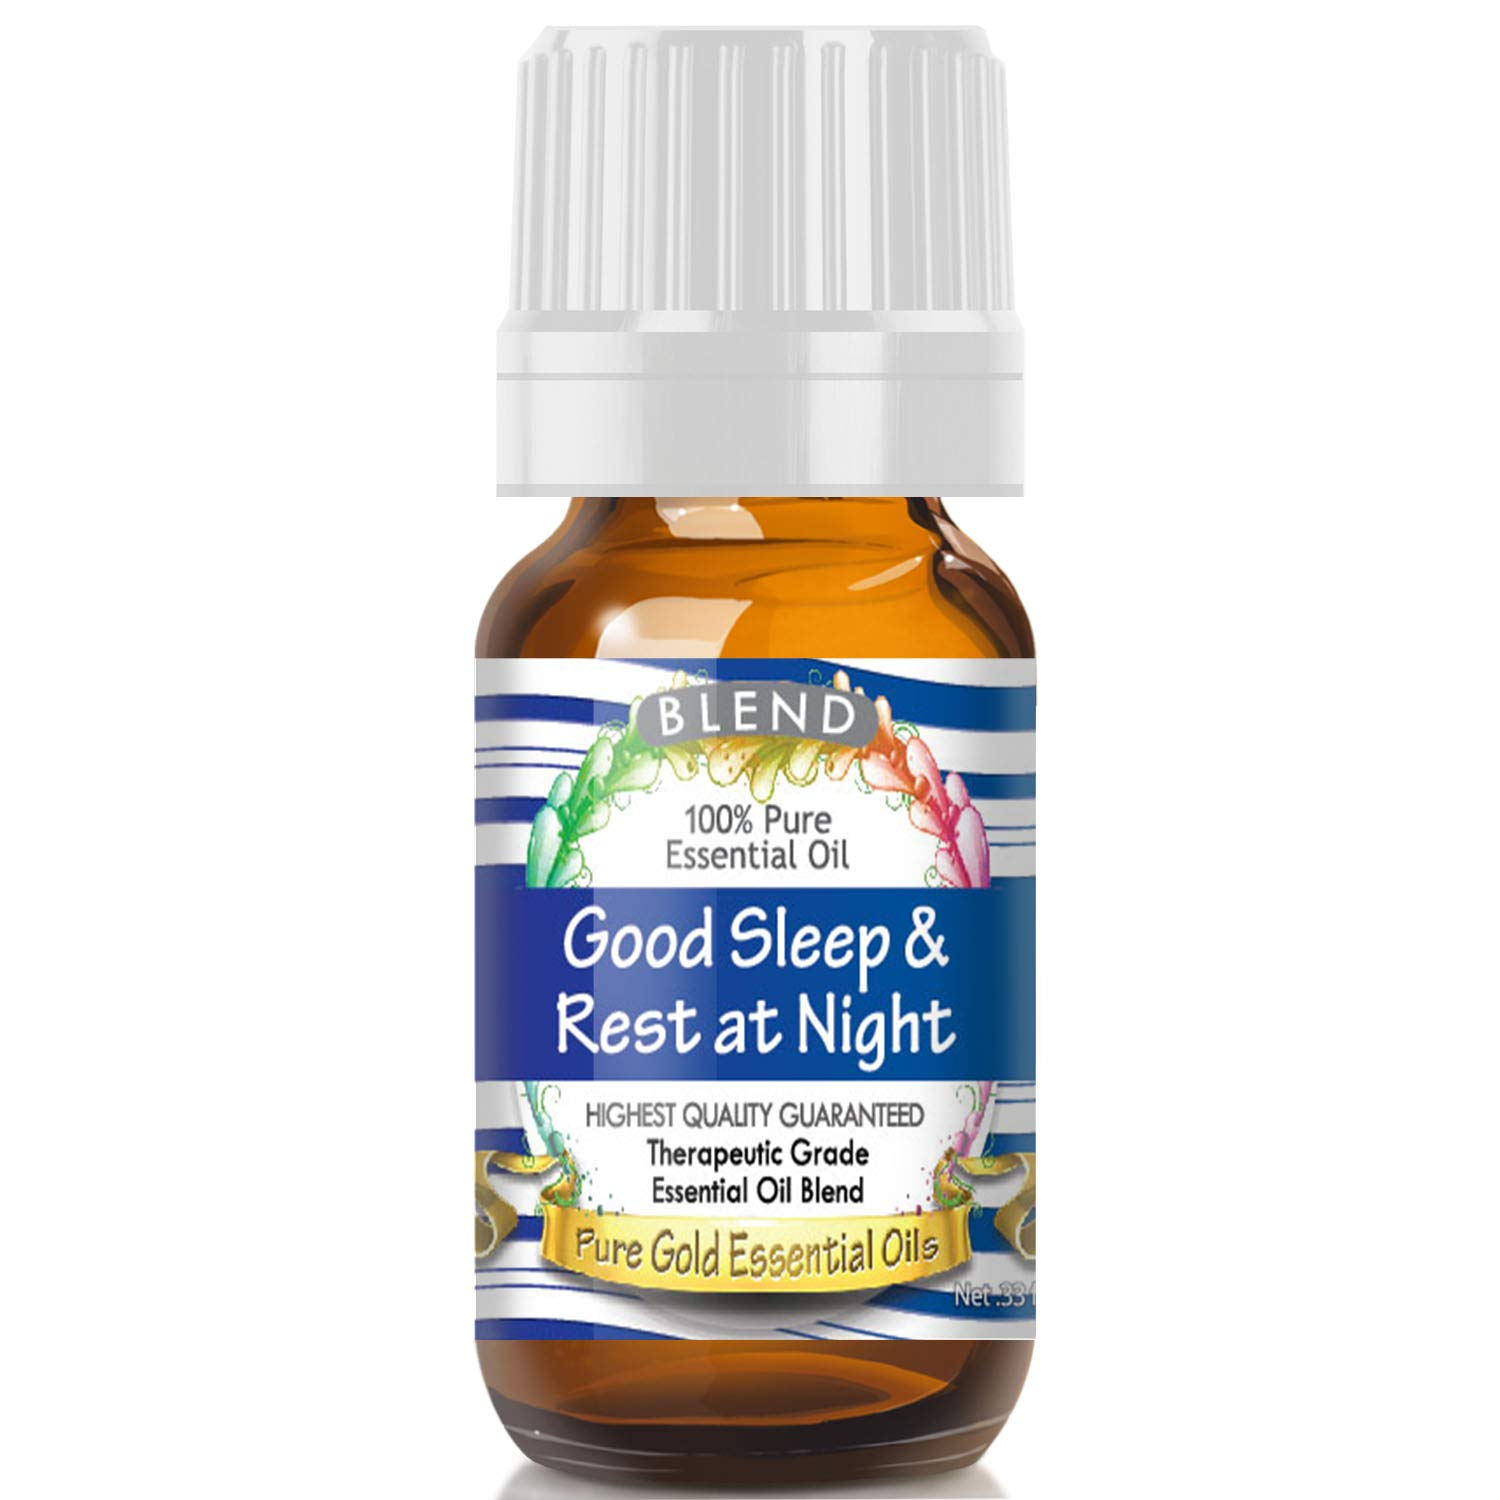 Good Sleep & Rest at Night Blend Essential Oil (100% Pure, Natural, UNDILUTED) 10ml - Best Therapeutic Grade - Perfect for Your Aromatherapy Diffuser, Relaxation, More! essential oil diffuser Essential oil diffuser review – Best choices and how they work 61fGfgHpqsL